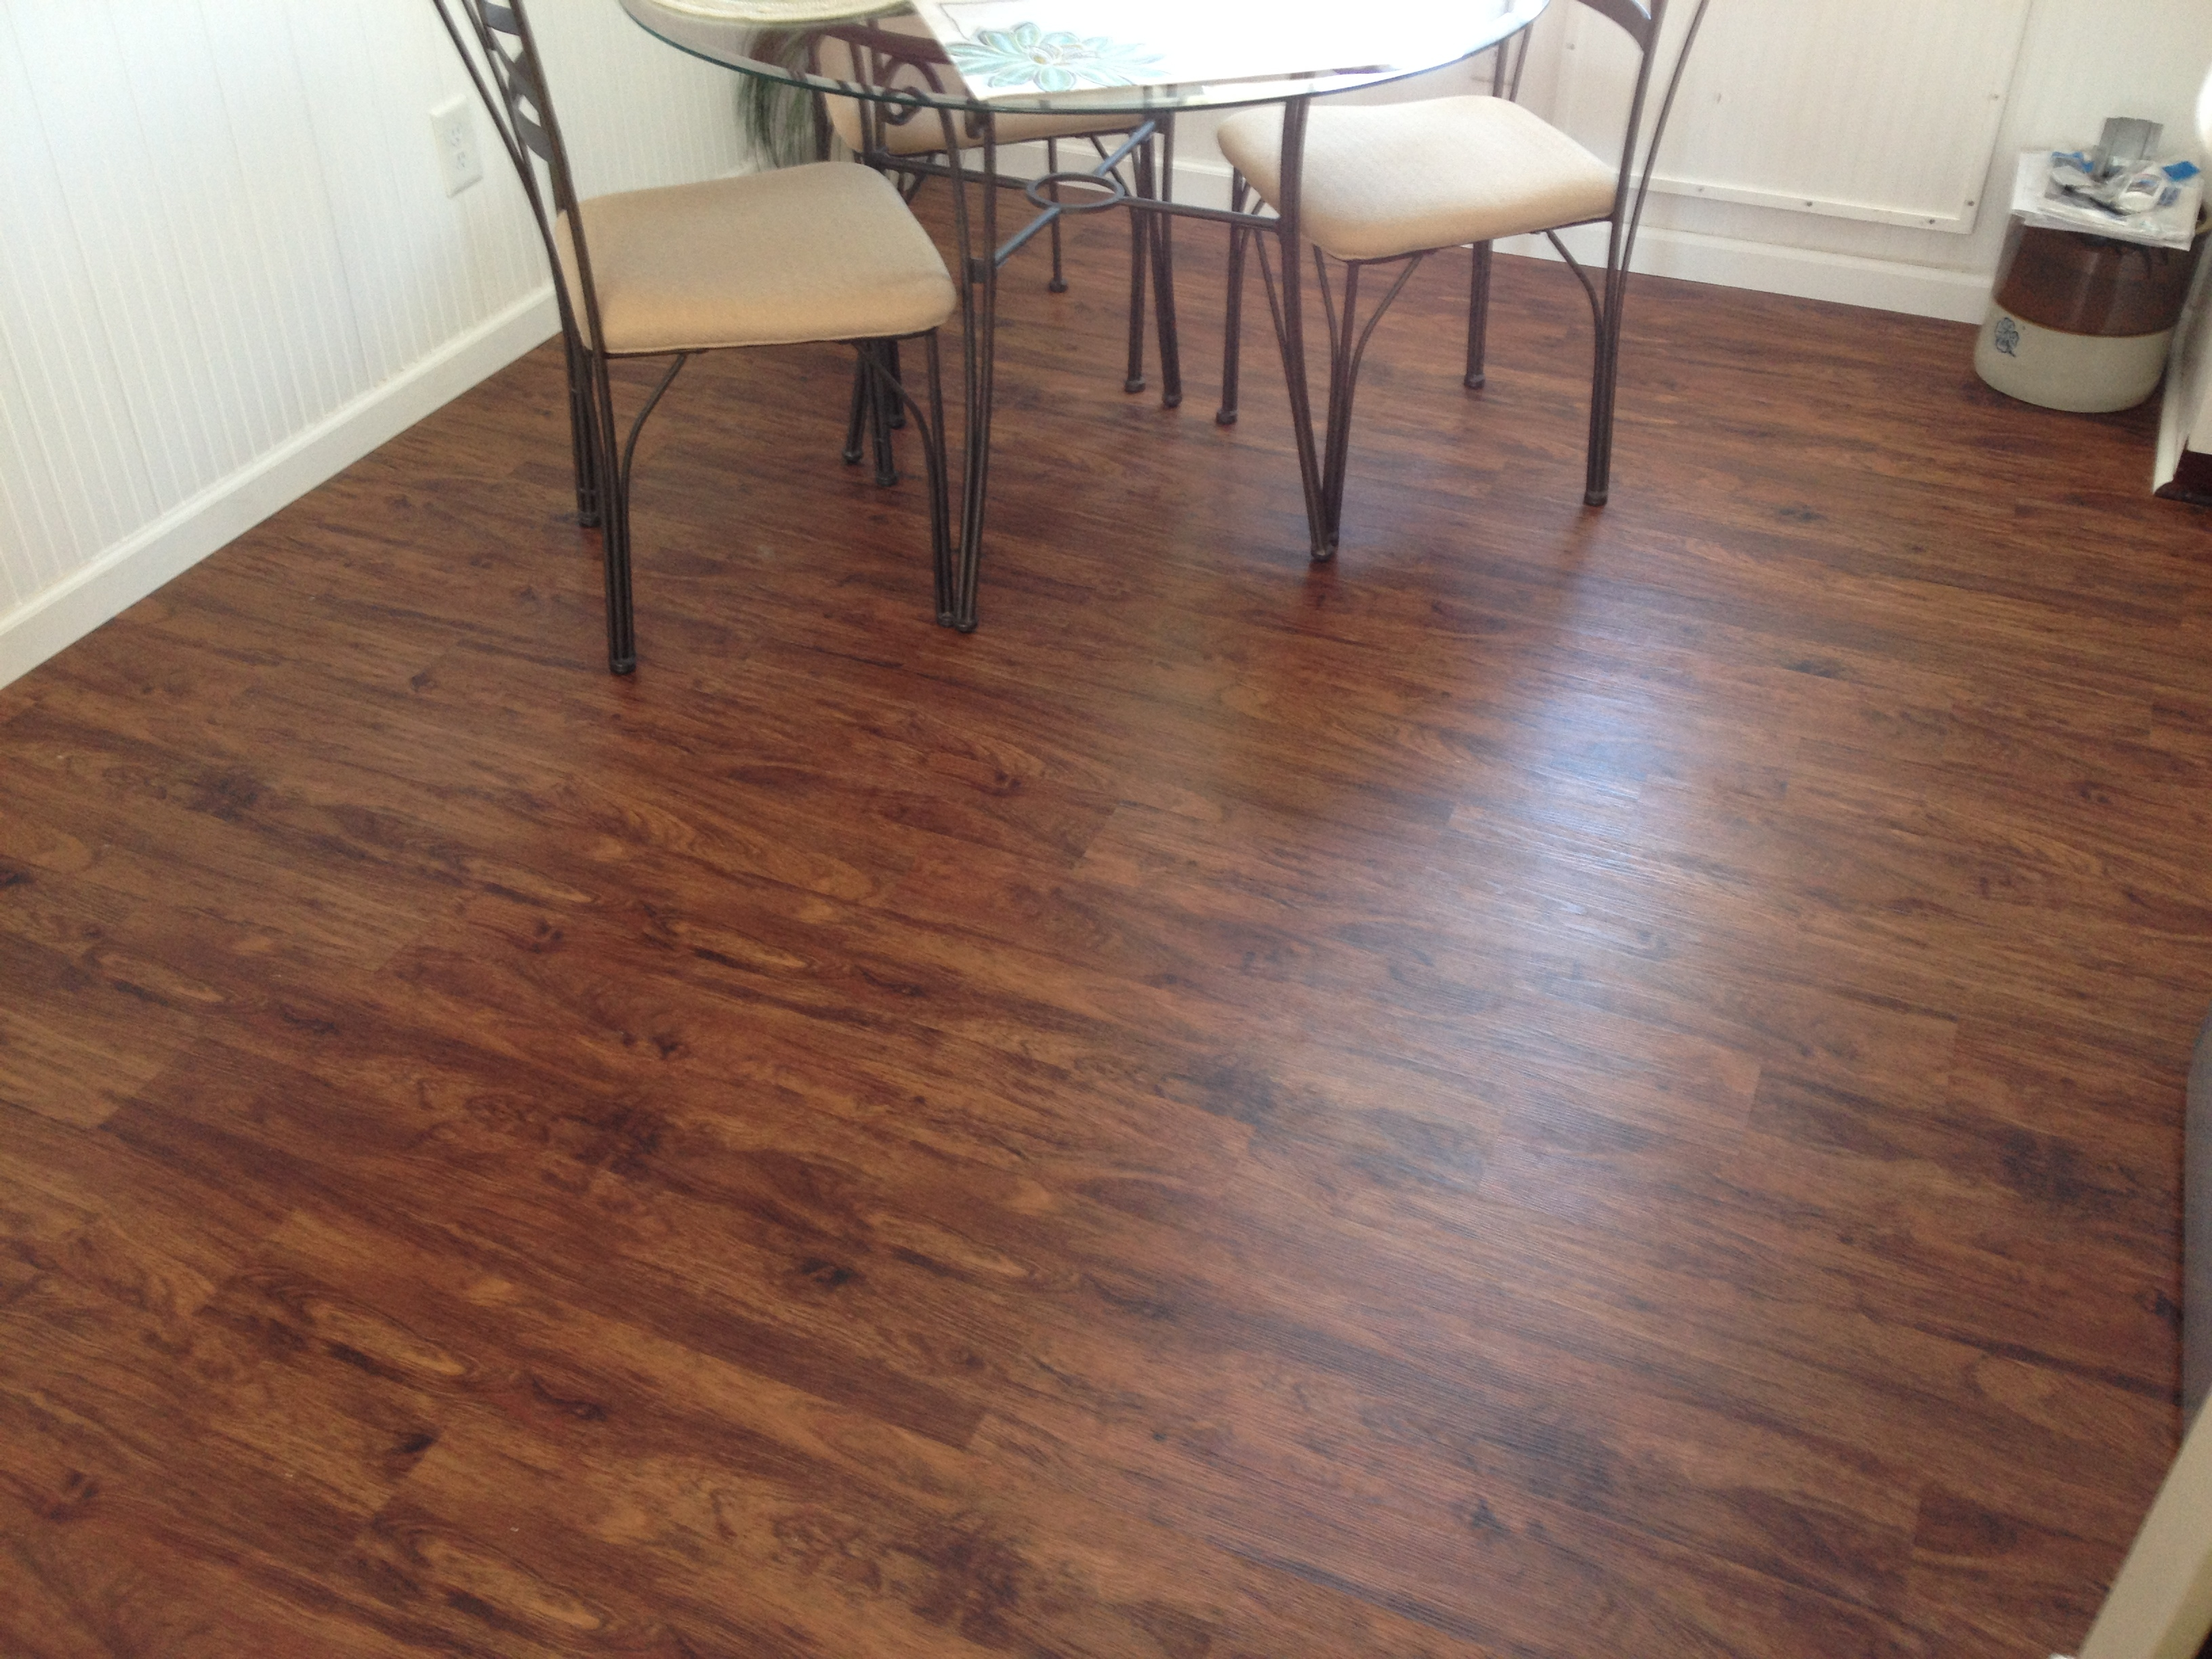 Vinyl Plank Flooring Kitchen Floating Vinyl Plank Flooring Uk All About Flooring Designs